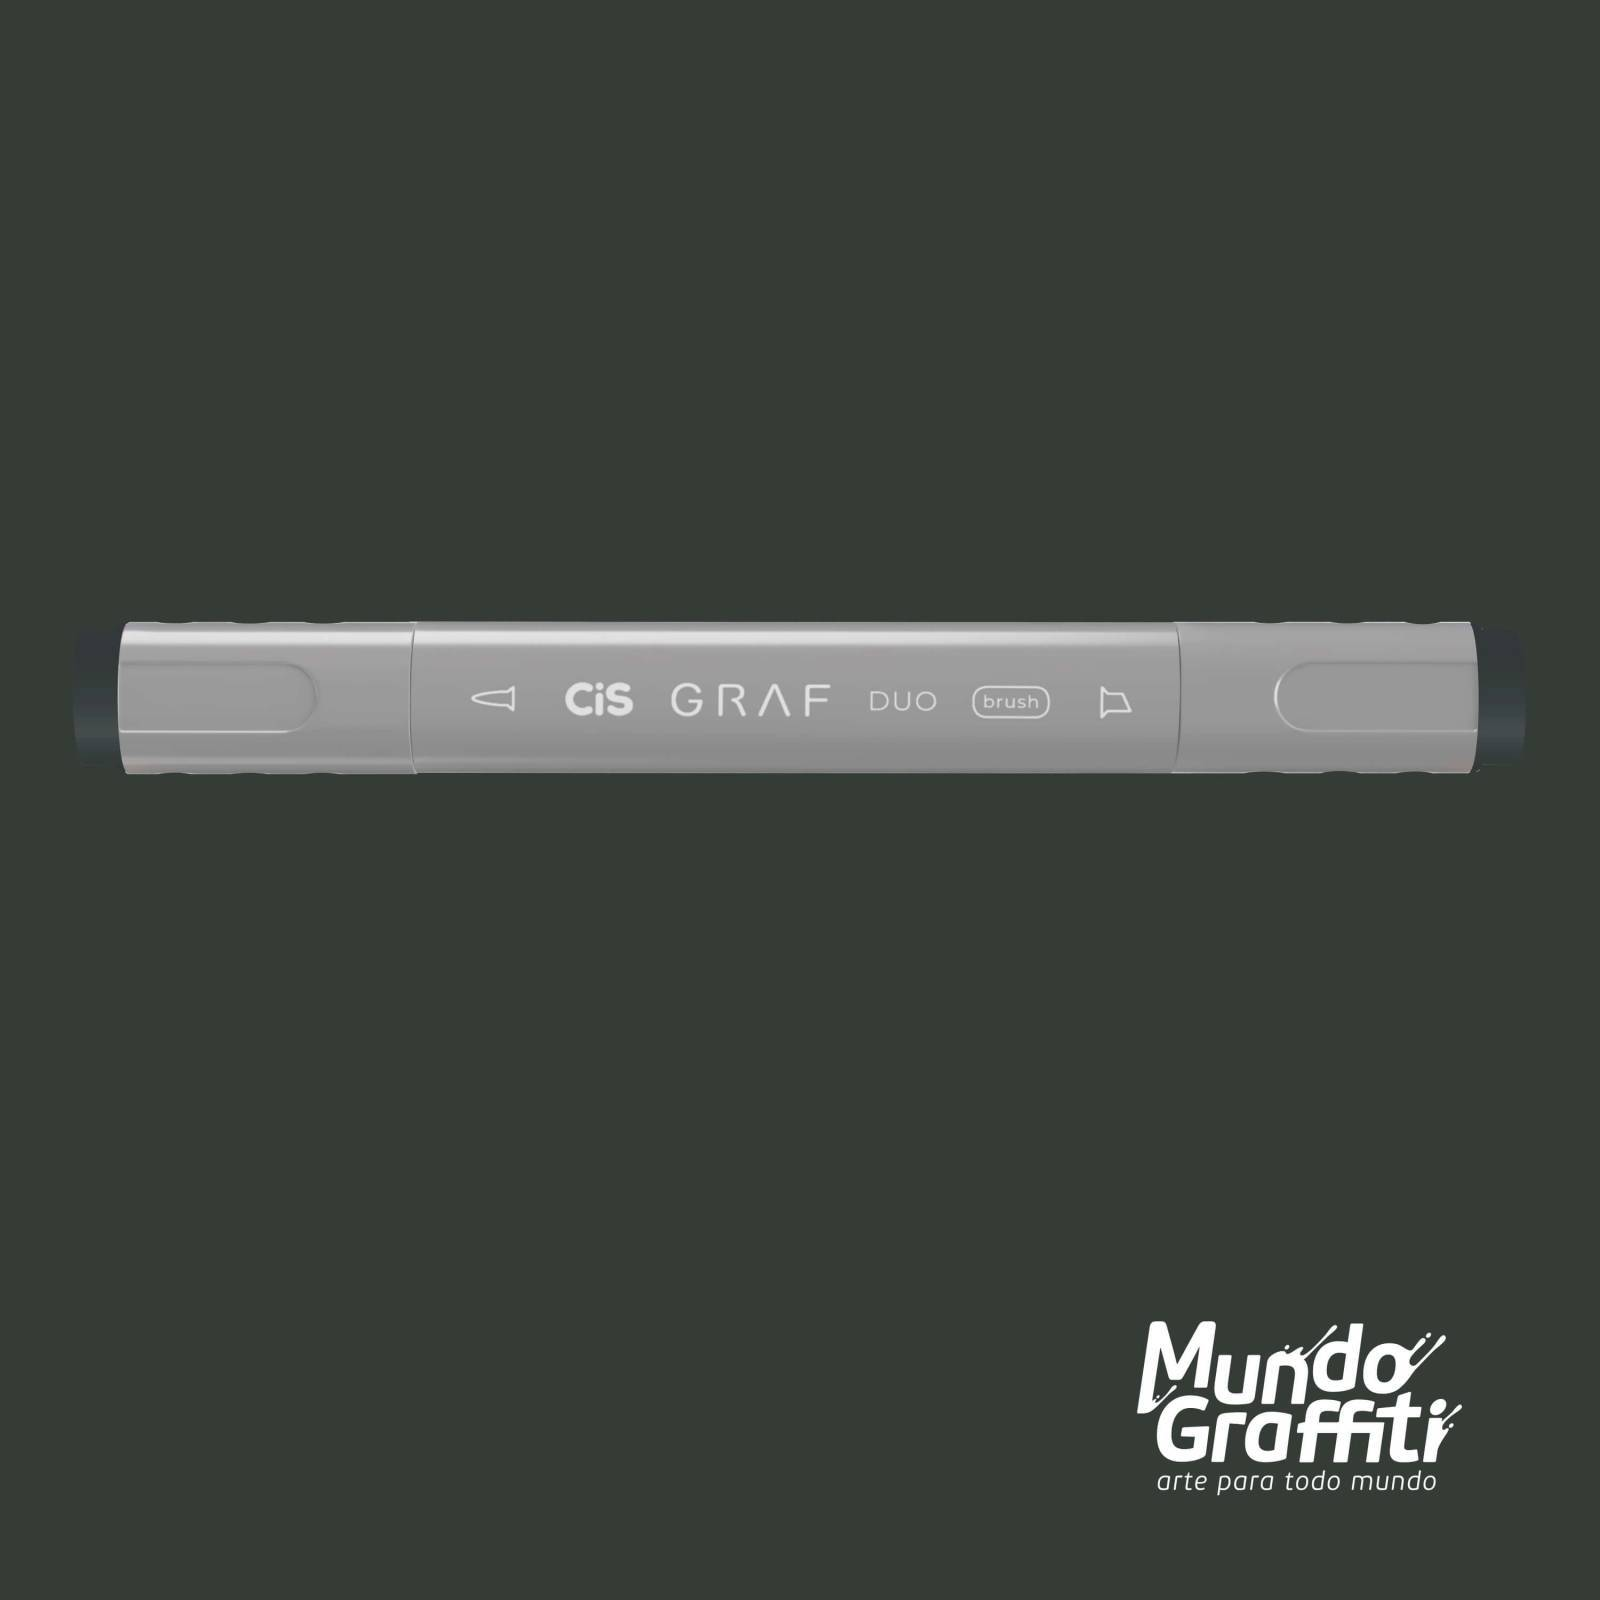 Marcador Cis Graf Duo Brush Green Grey GG7 - Mundo Graffiti